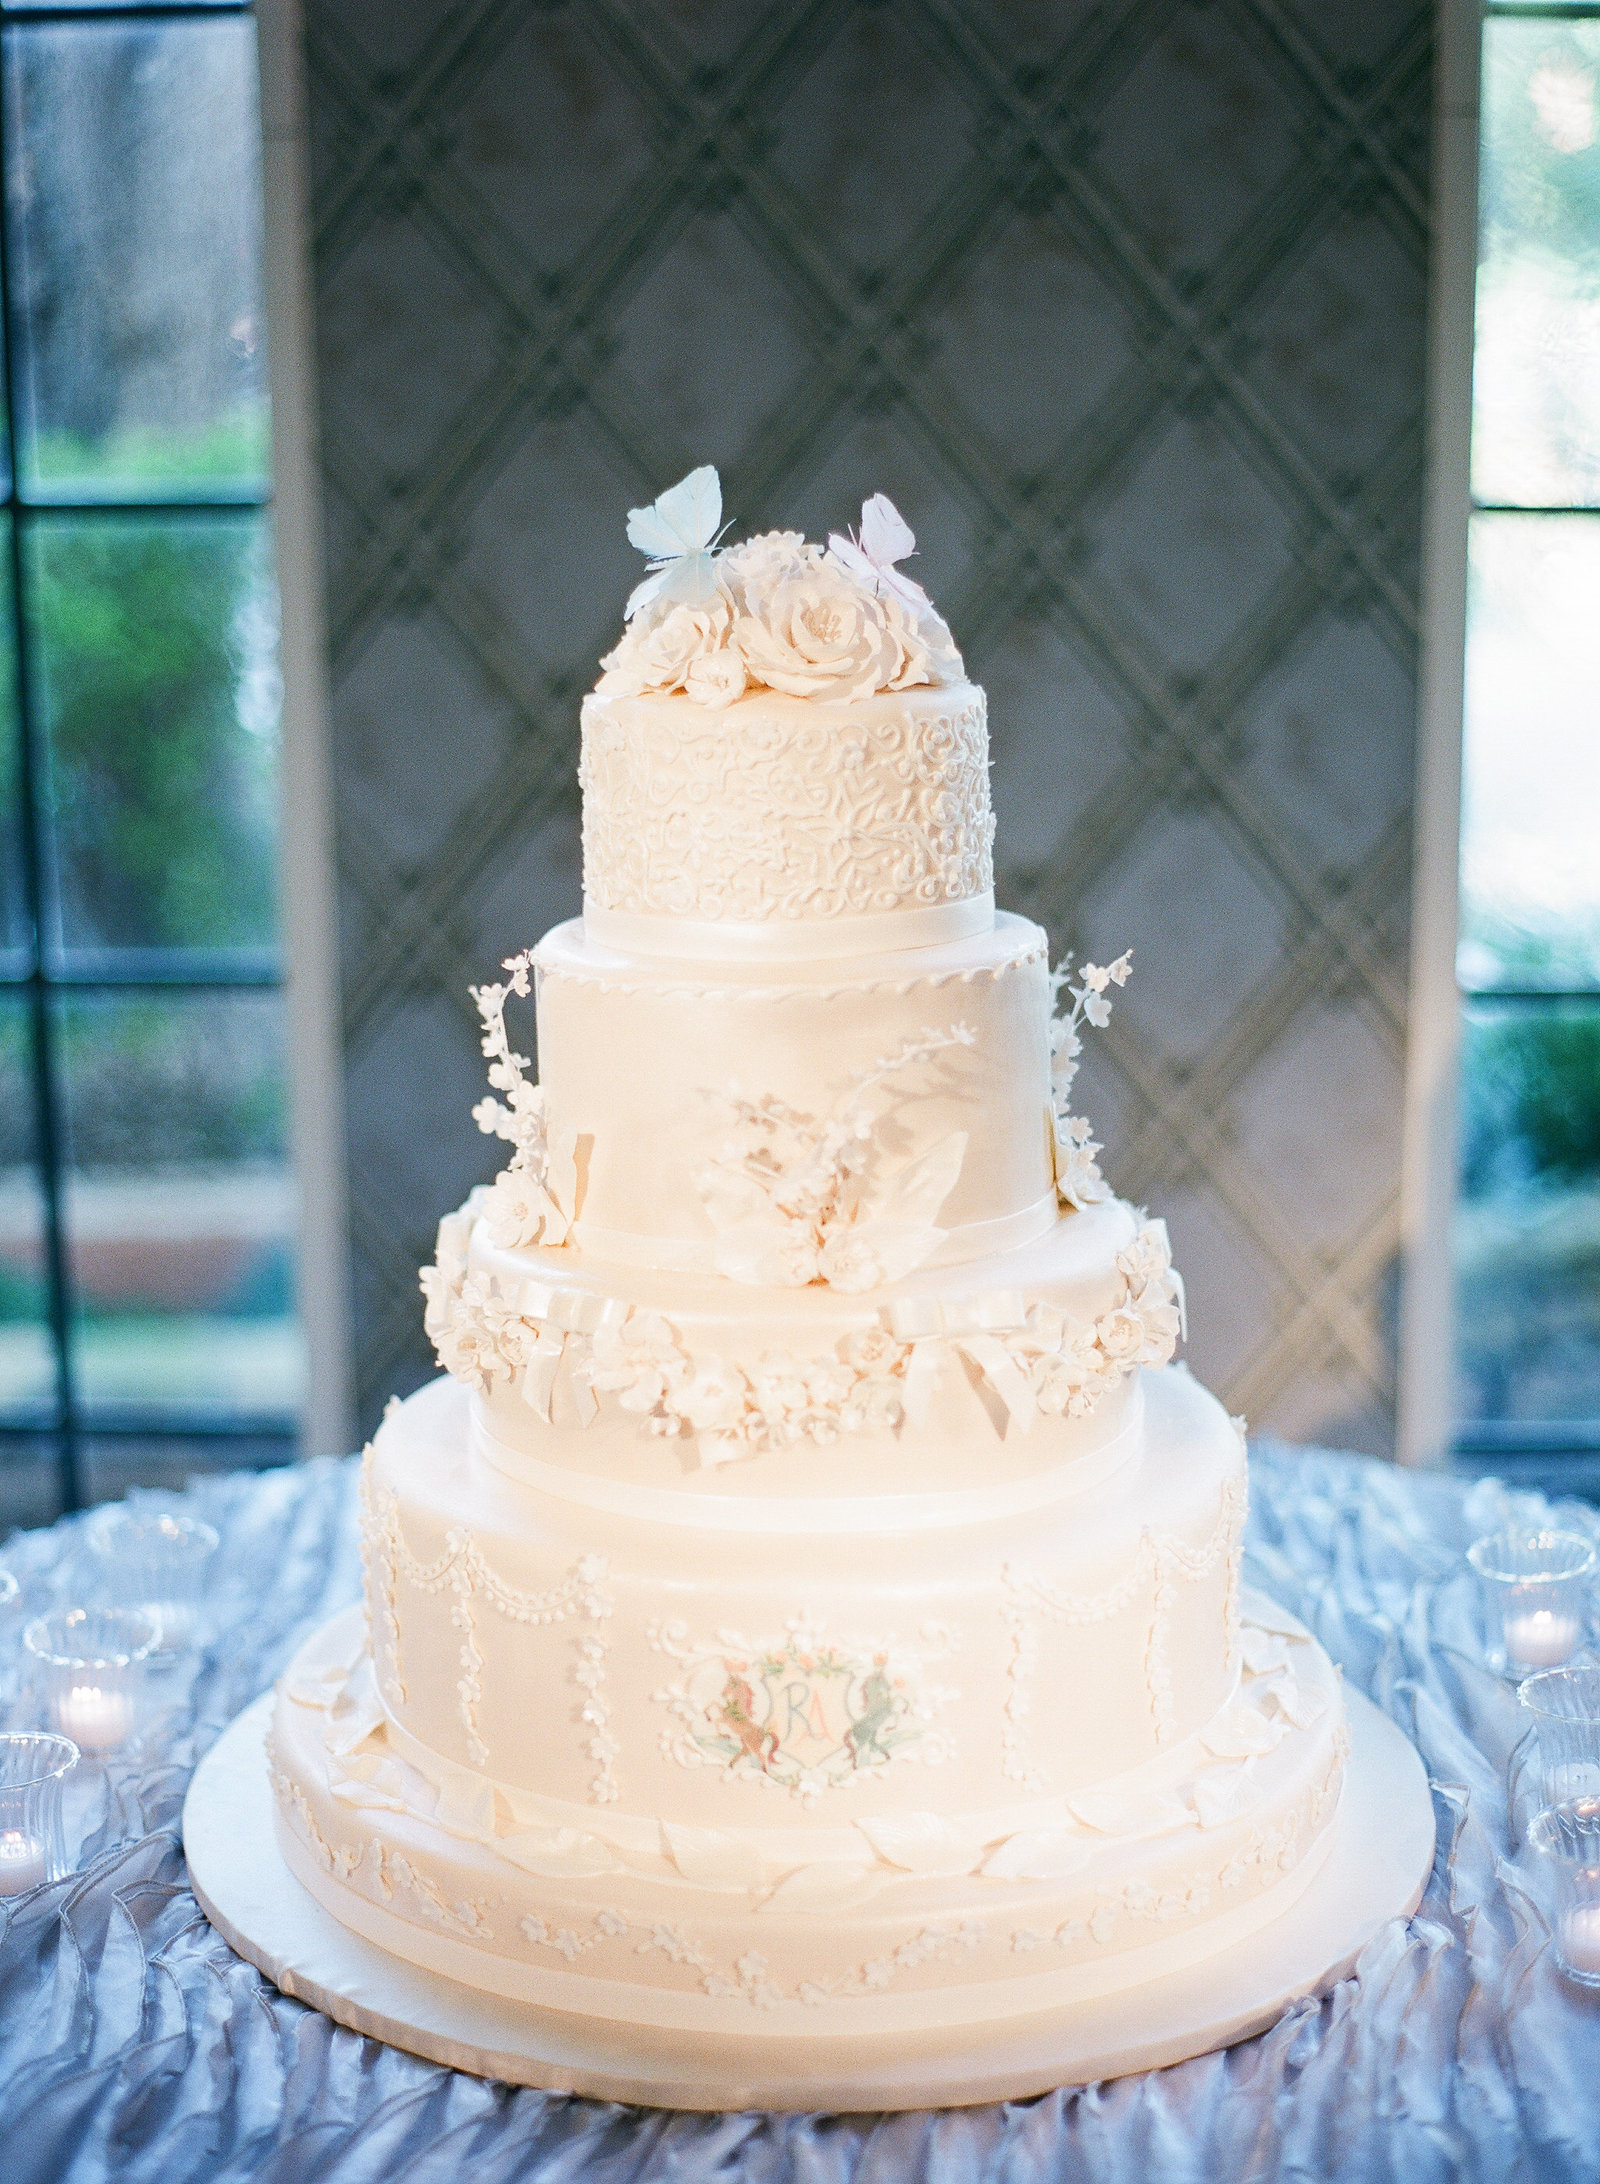 luxury wedding cake from frosted art bakery in dallas texas